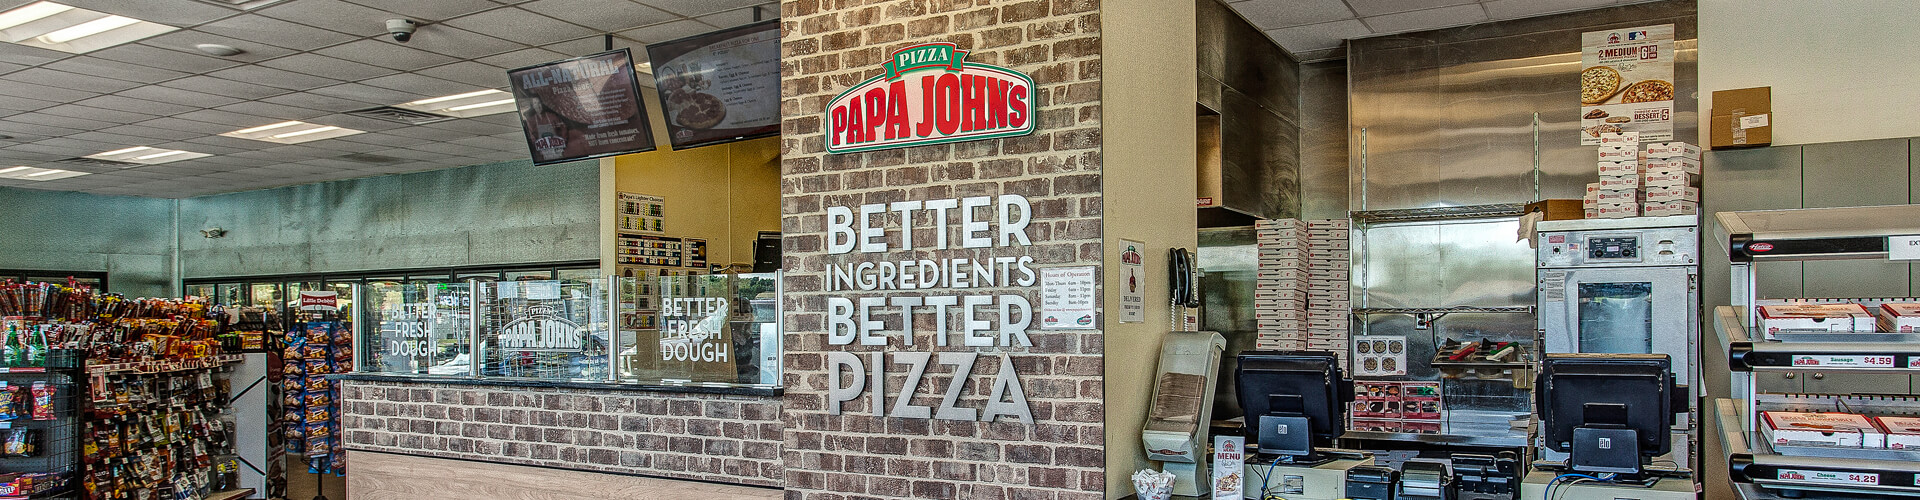 Papa Johns inside Leiszler Oil Company - Shortstop